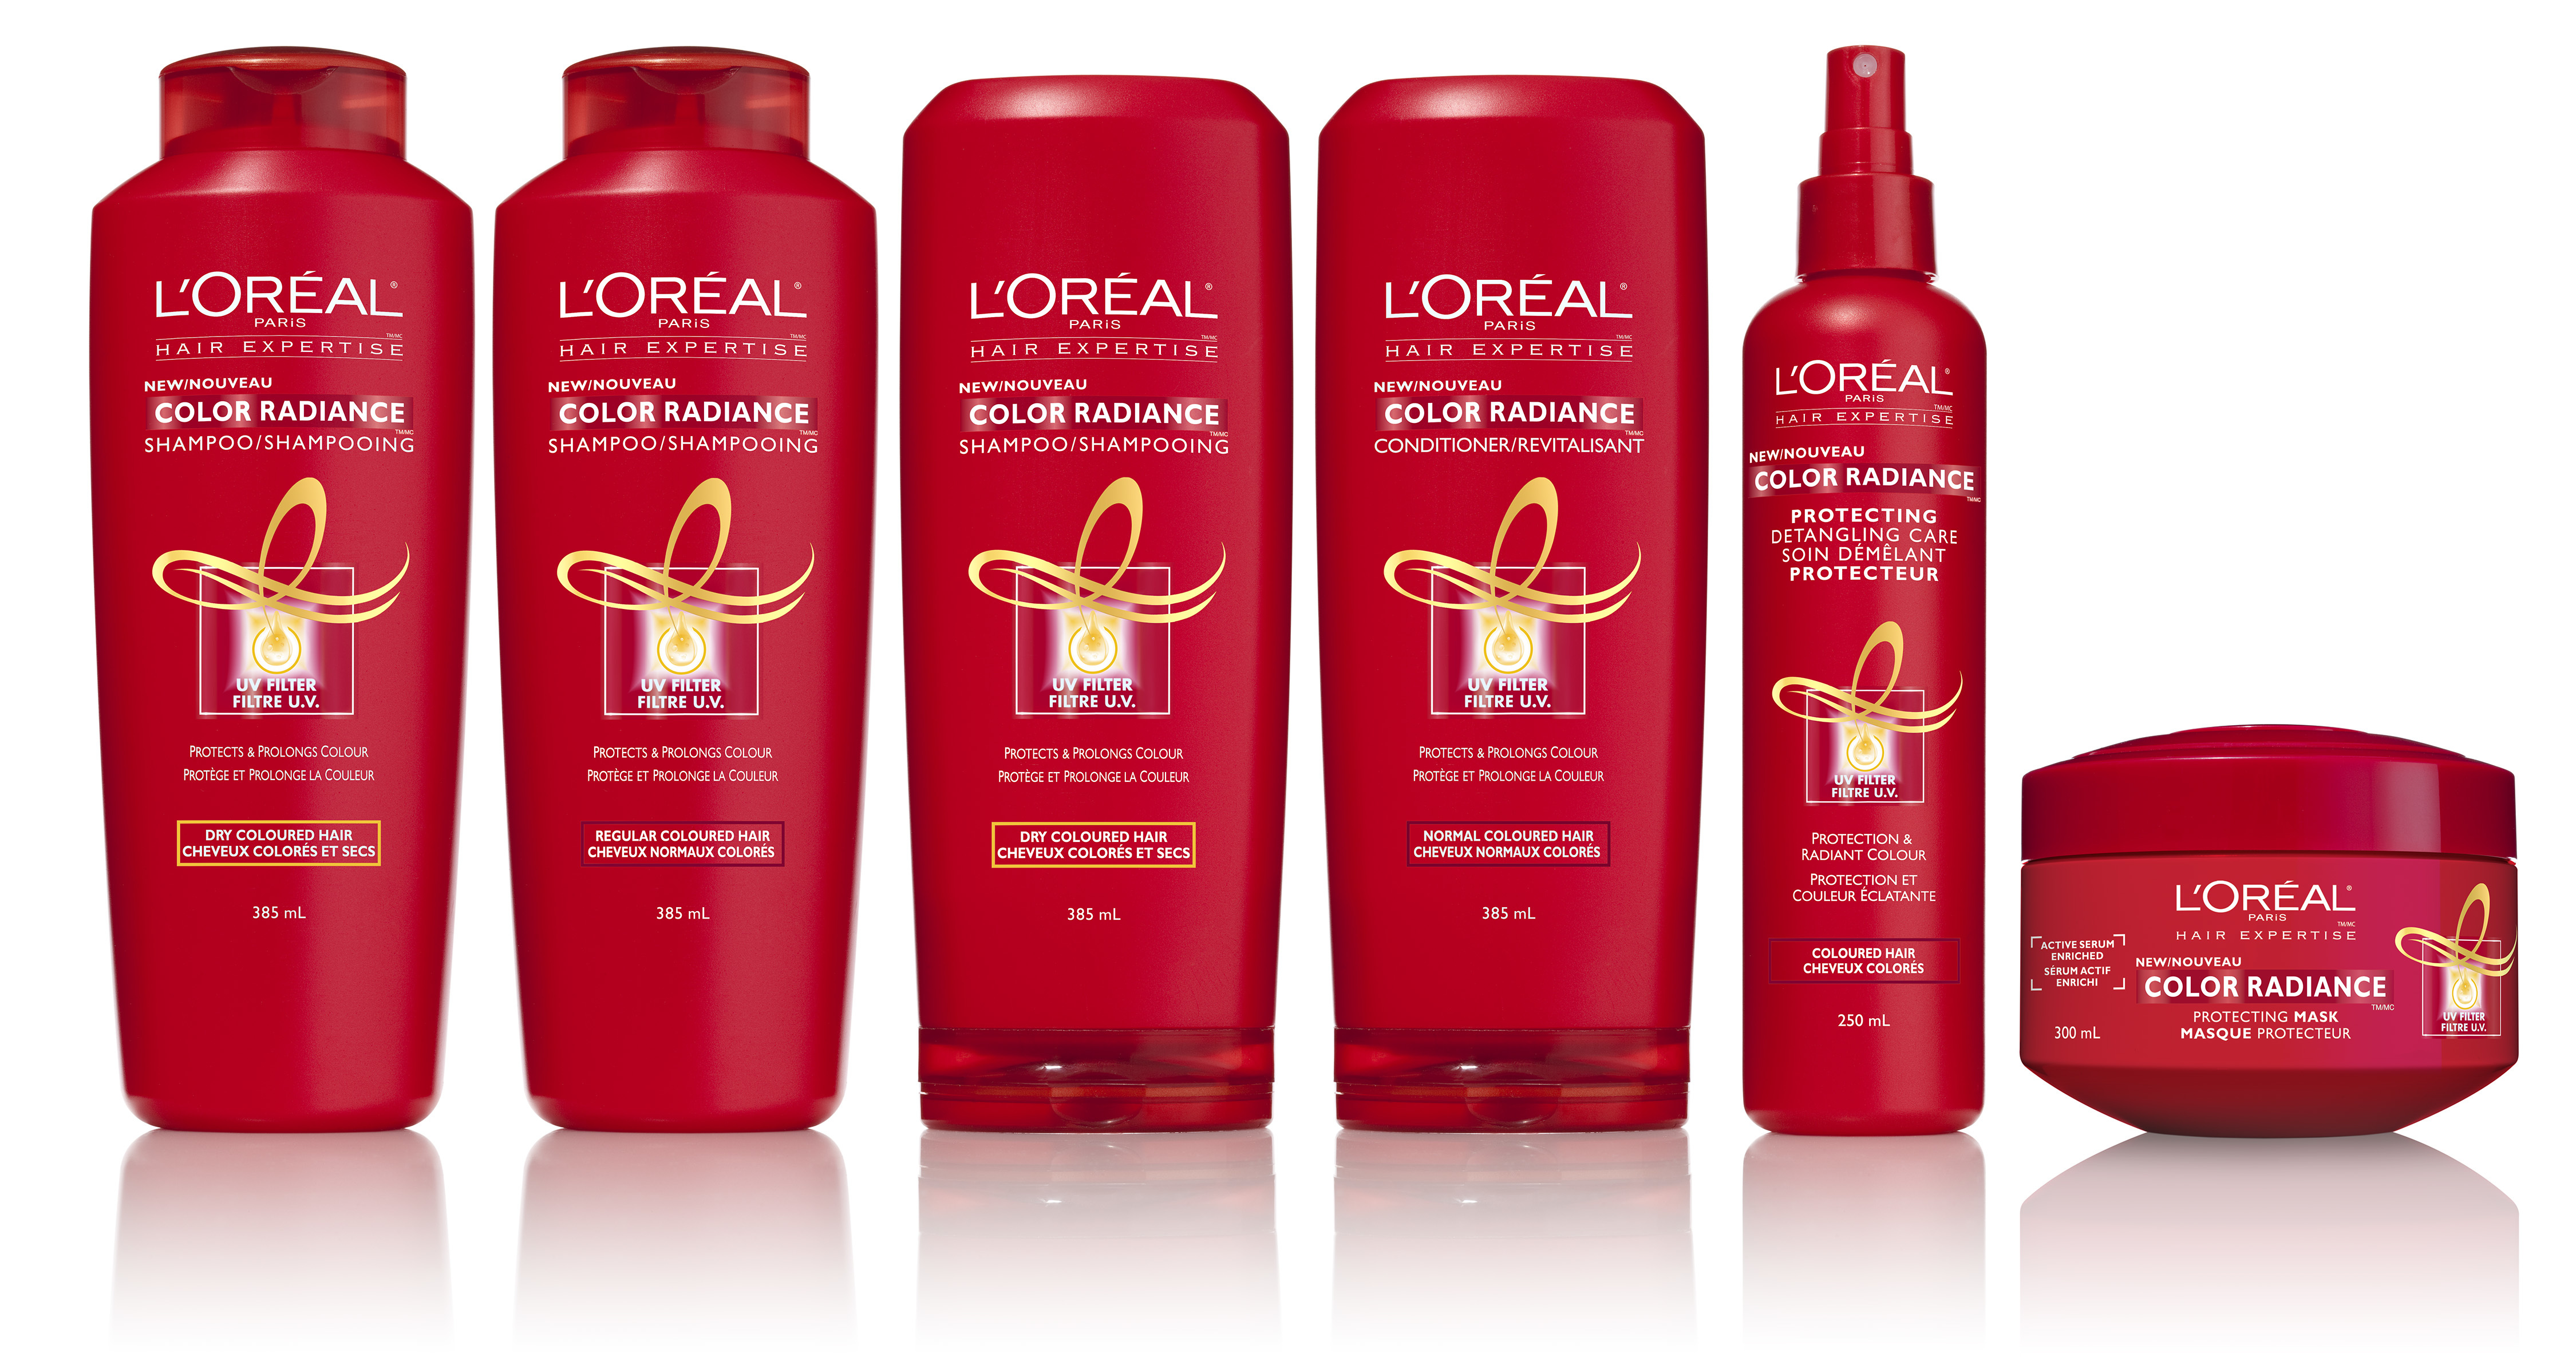 L Oreal Hair Expertise Color Radiance Conditioner Reviews